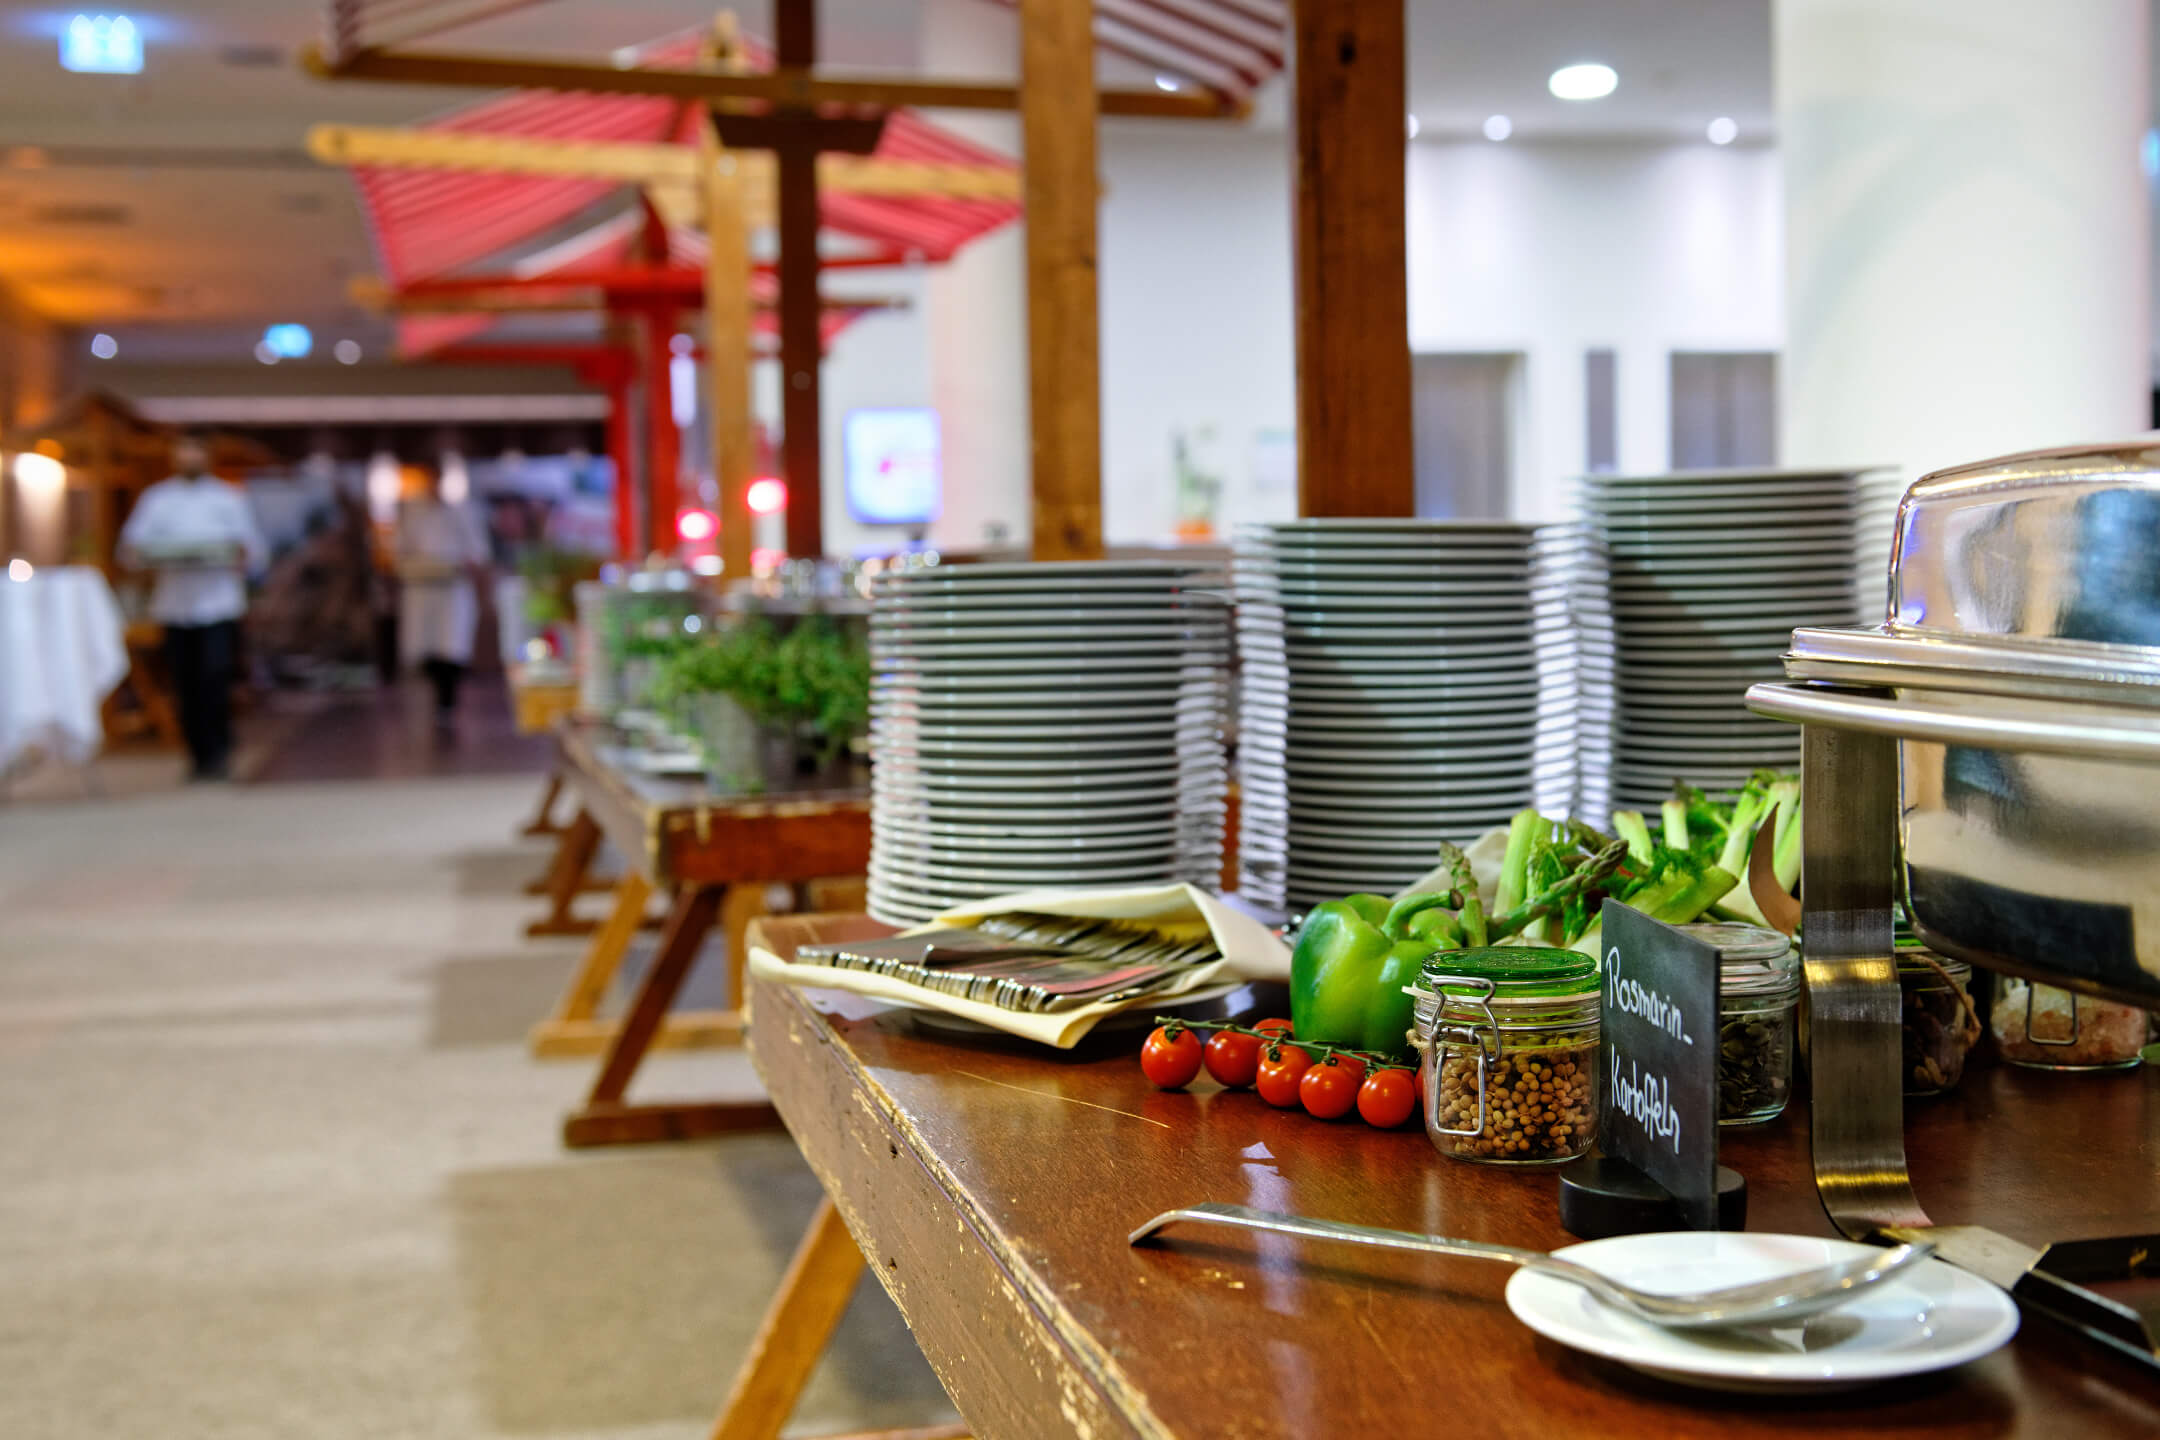 Event with buffet and market stands | ATLANTIC Hotel Galopprennbahn Bremen